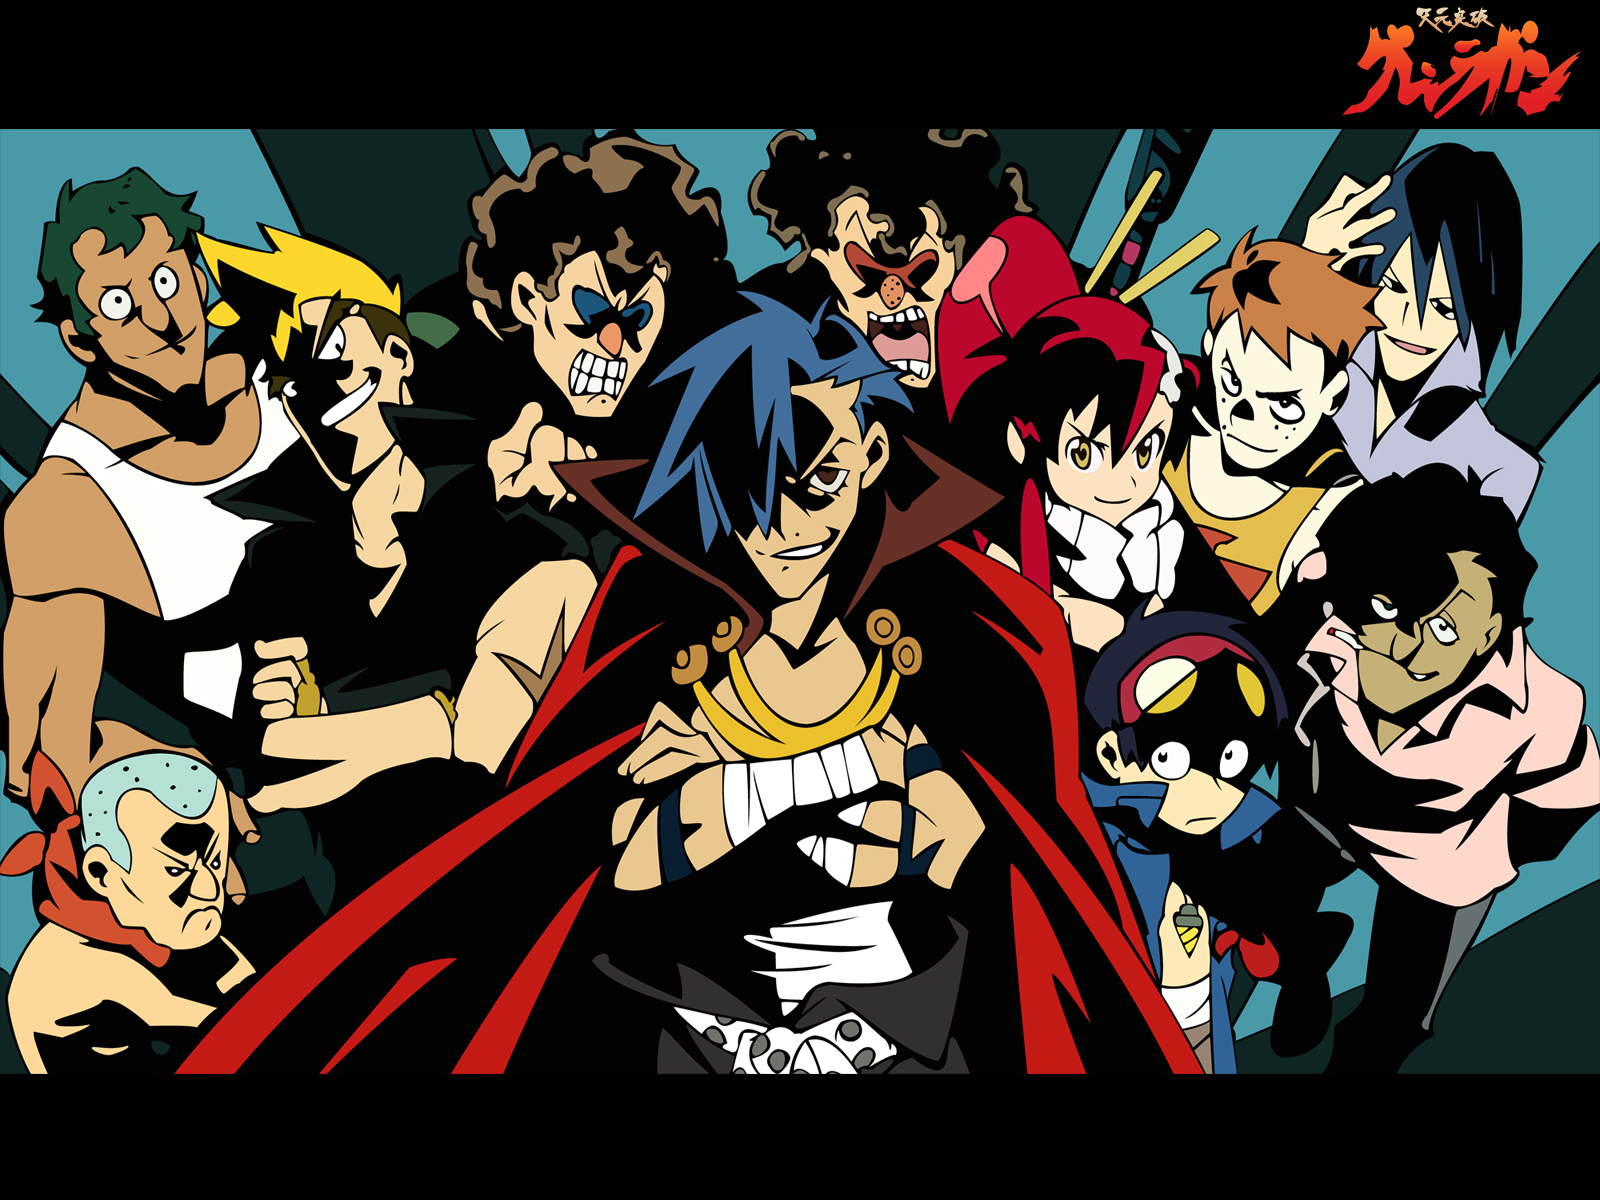 tengen_toppa_gurren-lagann_211317